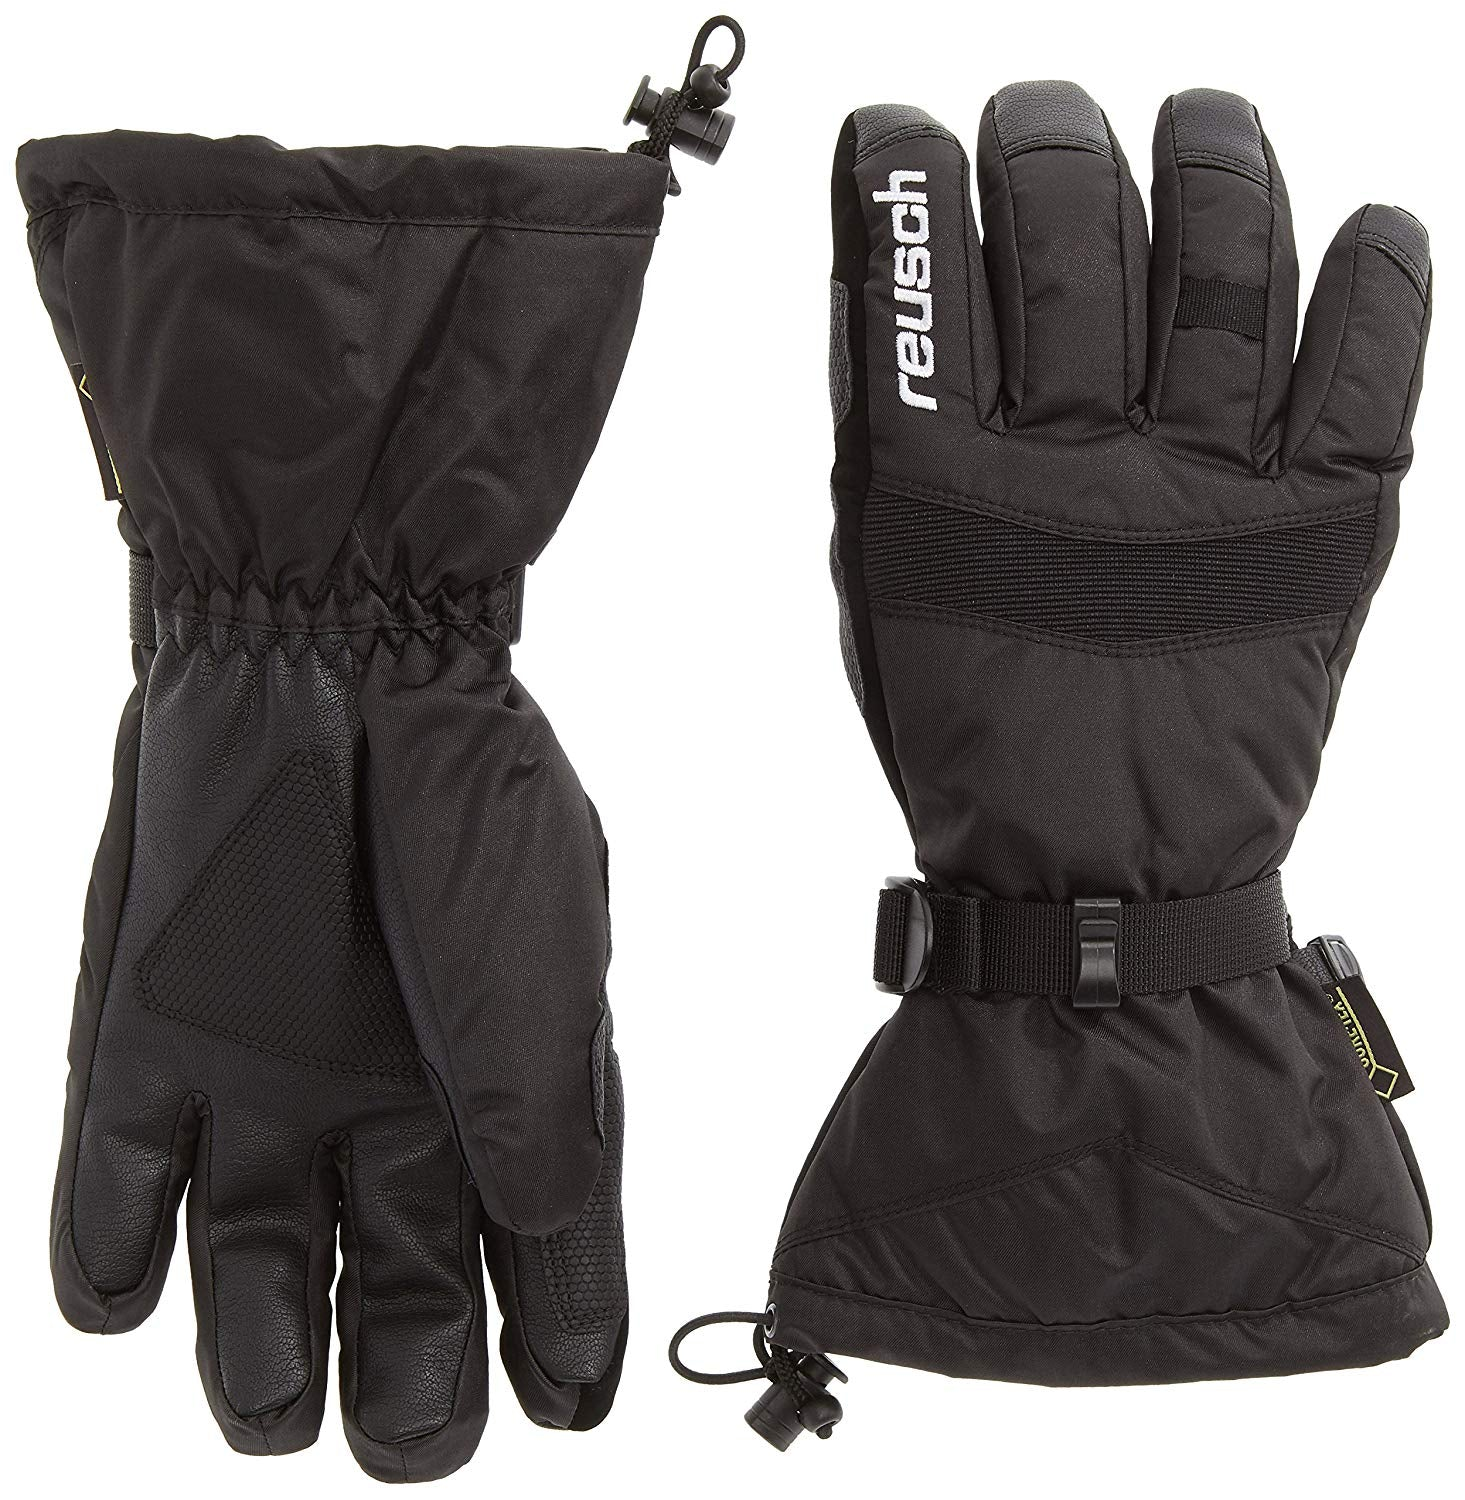 Reusch Maxim Gore Tex Mens Glove - Black/White